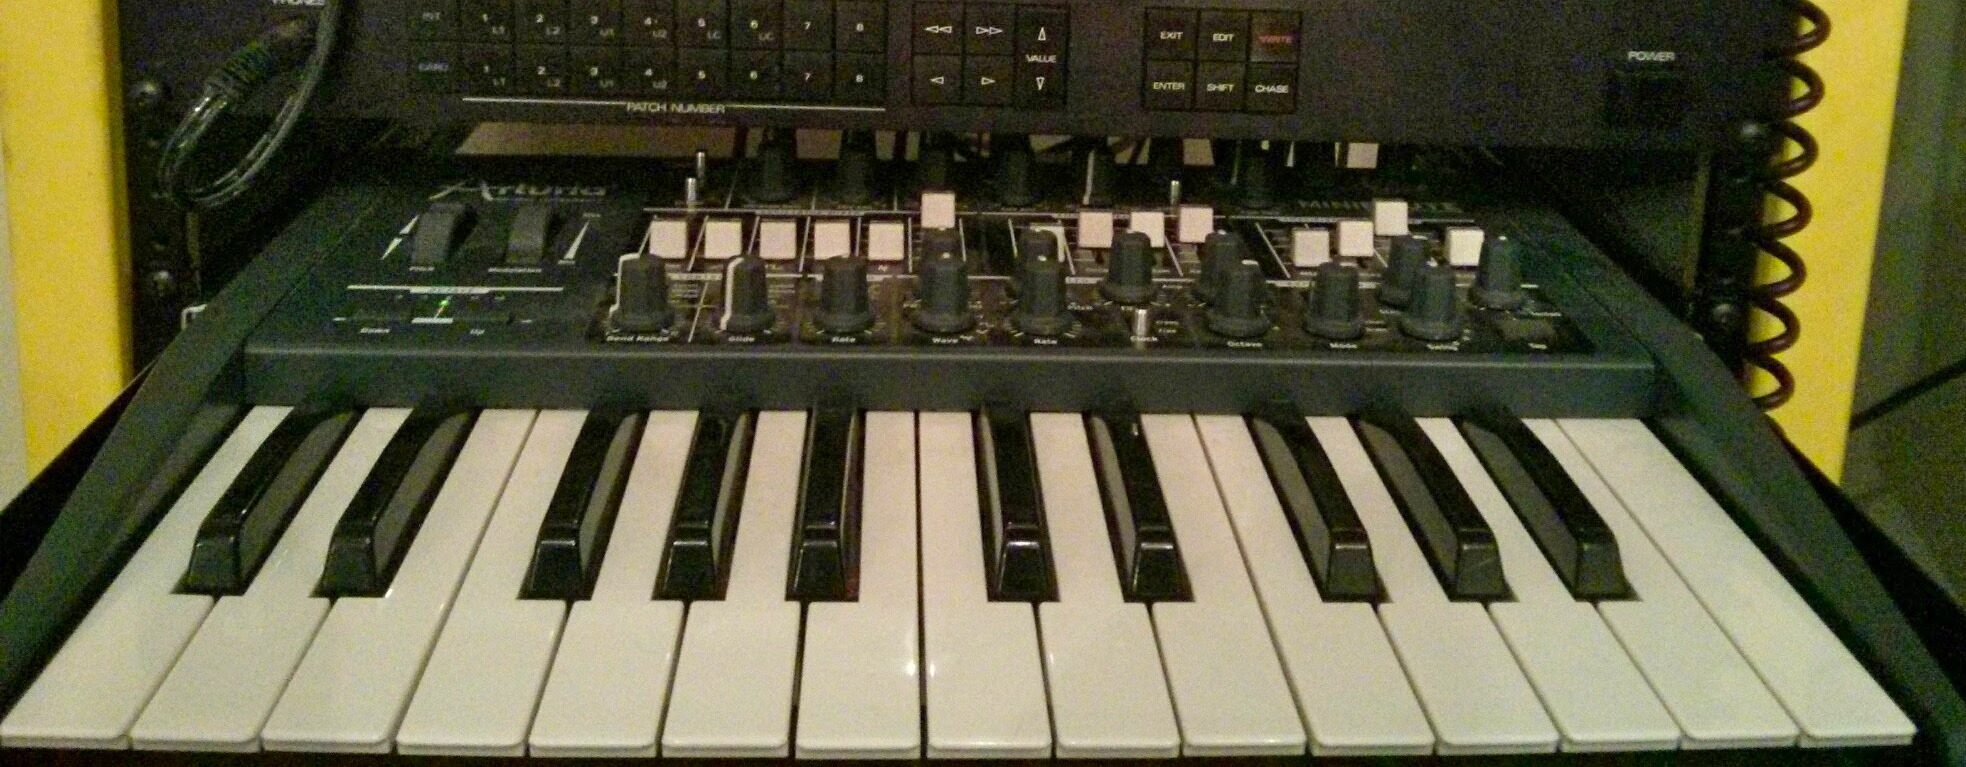 This synth lives on a rack shelf. The springy, superlight 2 octave keyboard was always more of a nuisance than an asset, so I got rid of it.